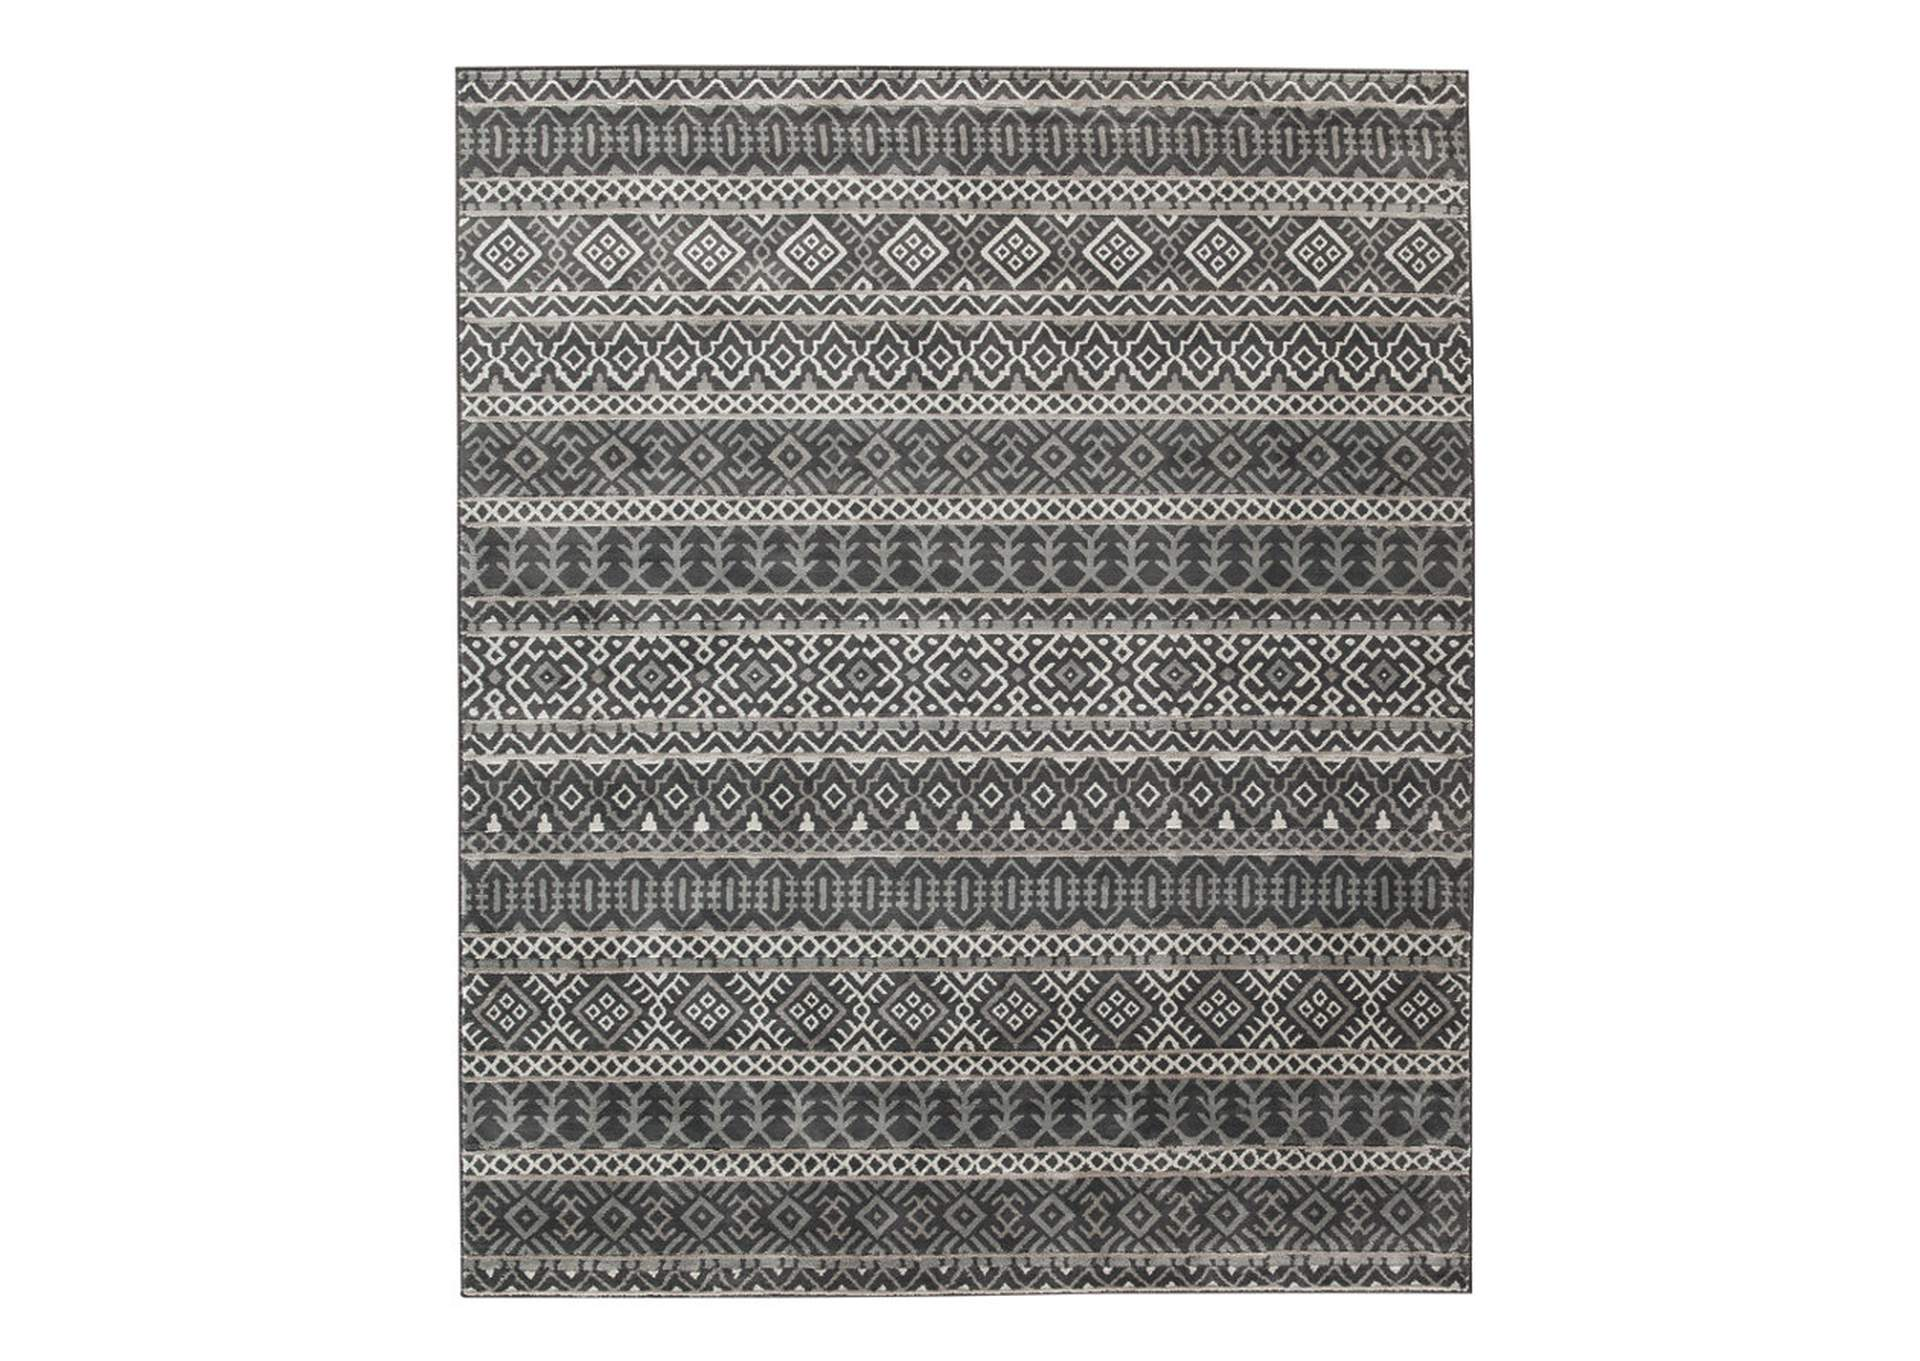 Joachim Black/Tan Medium Rug,Direct To Consumer Express